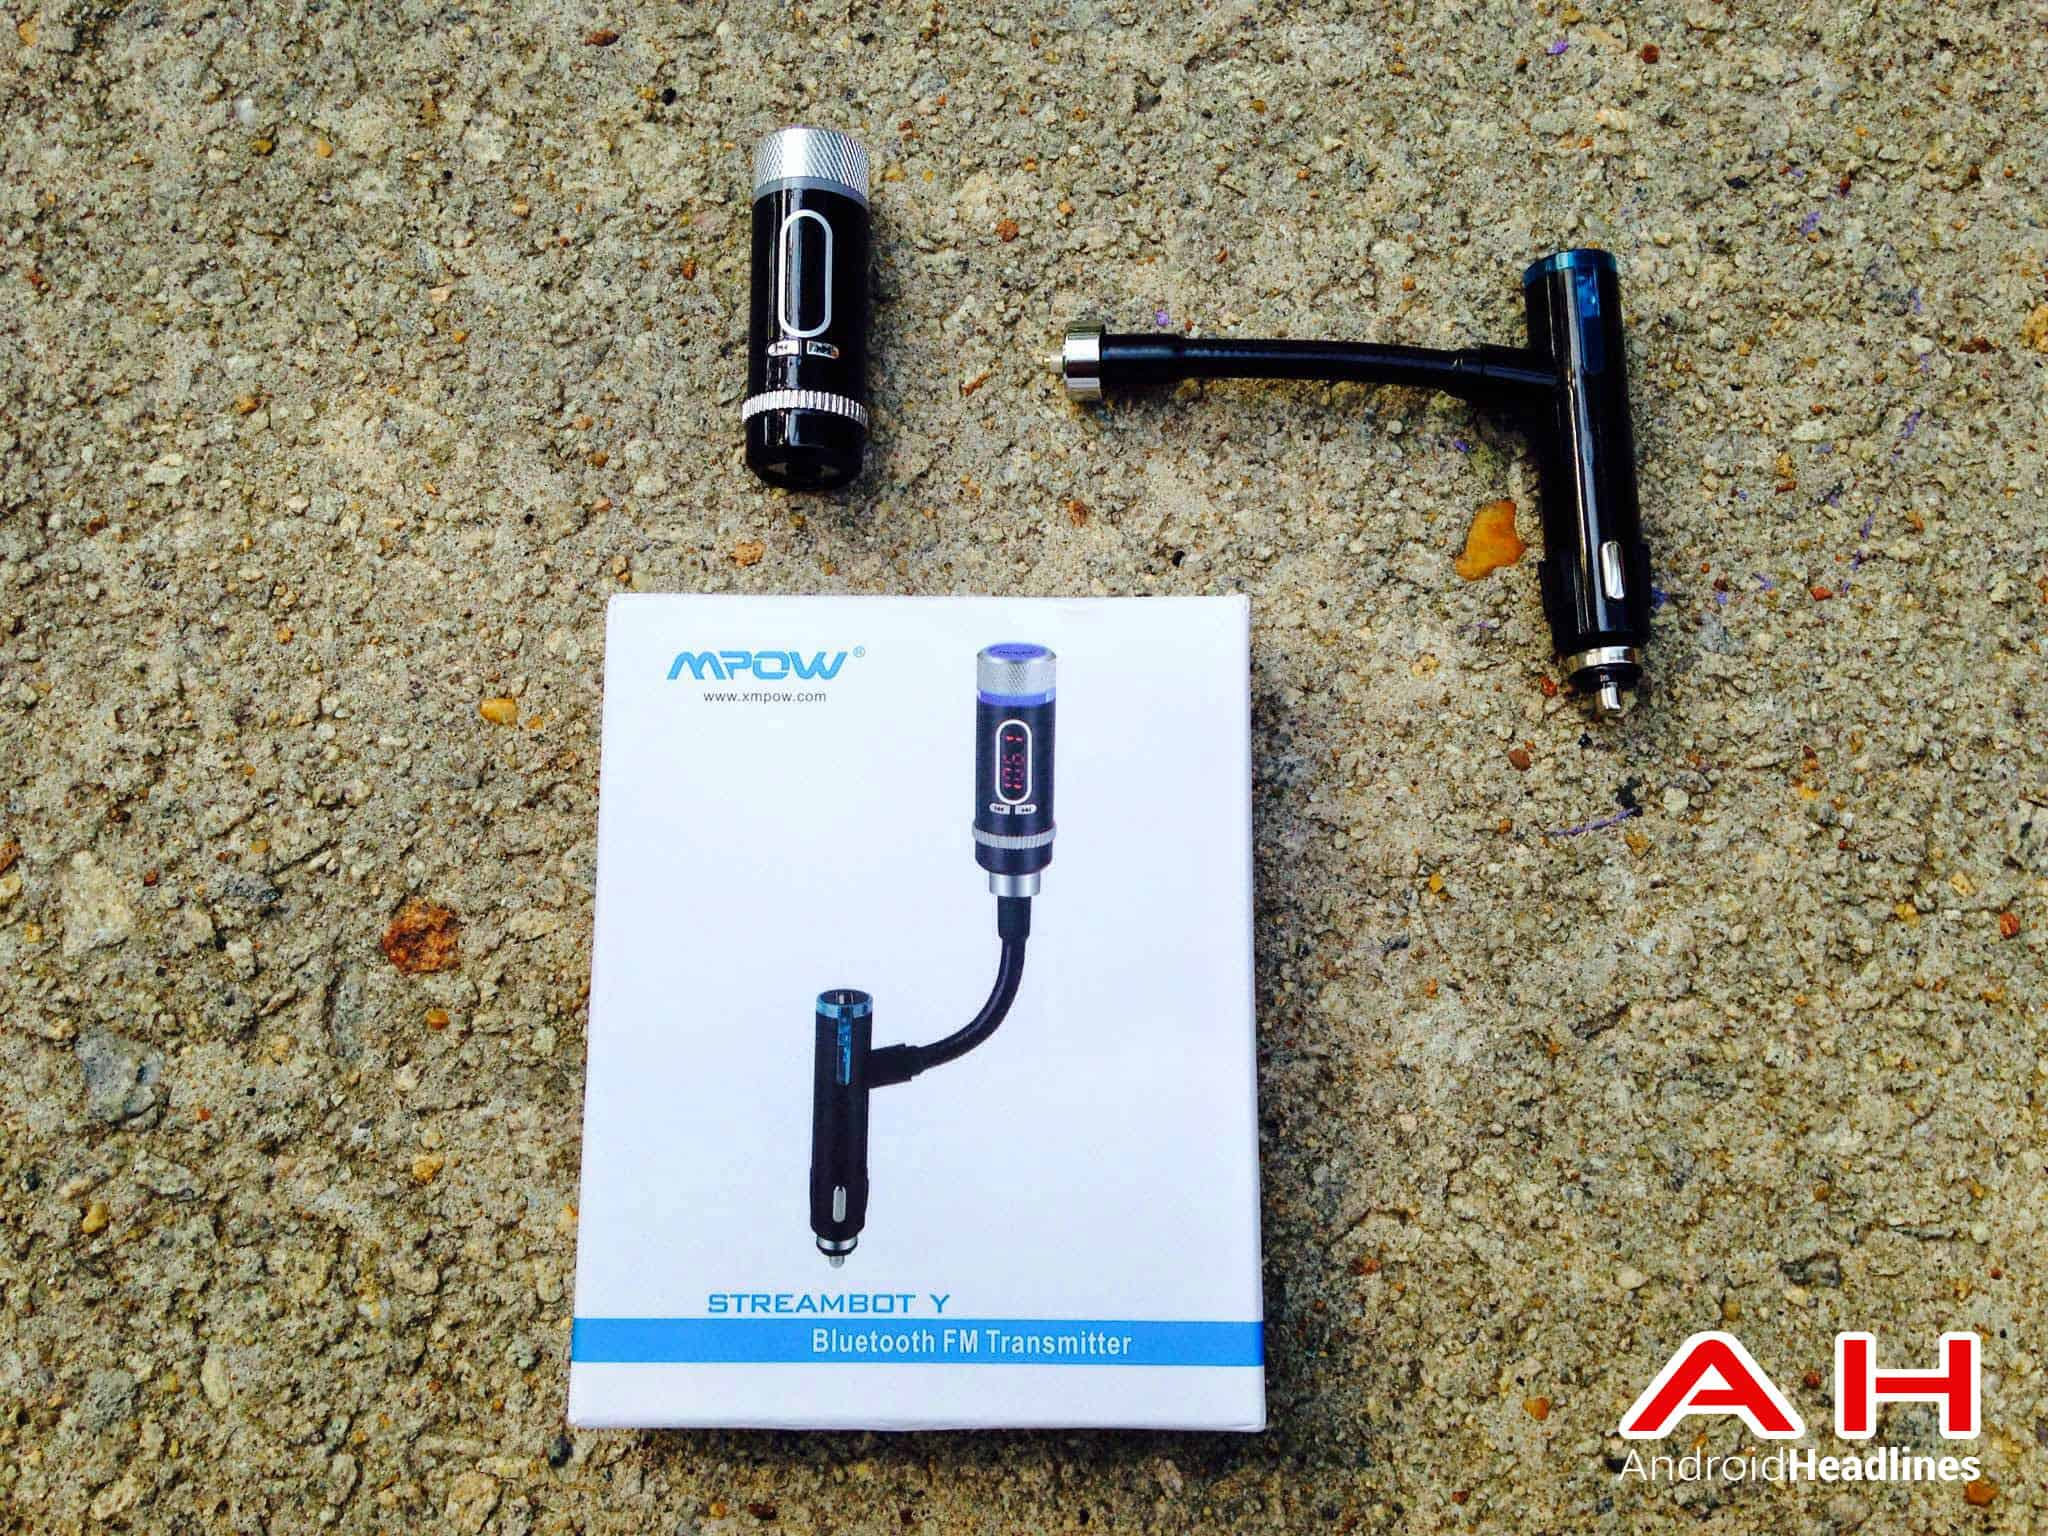 mpow streambot y bluetooth fm transmitter AH2